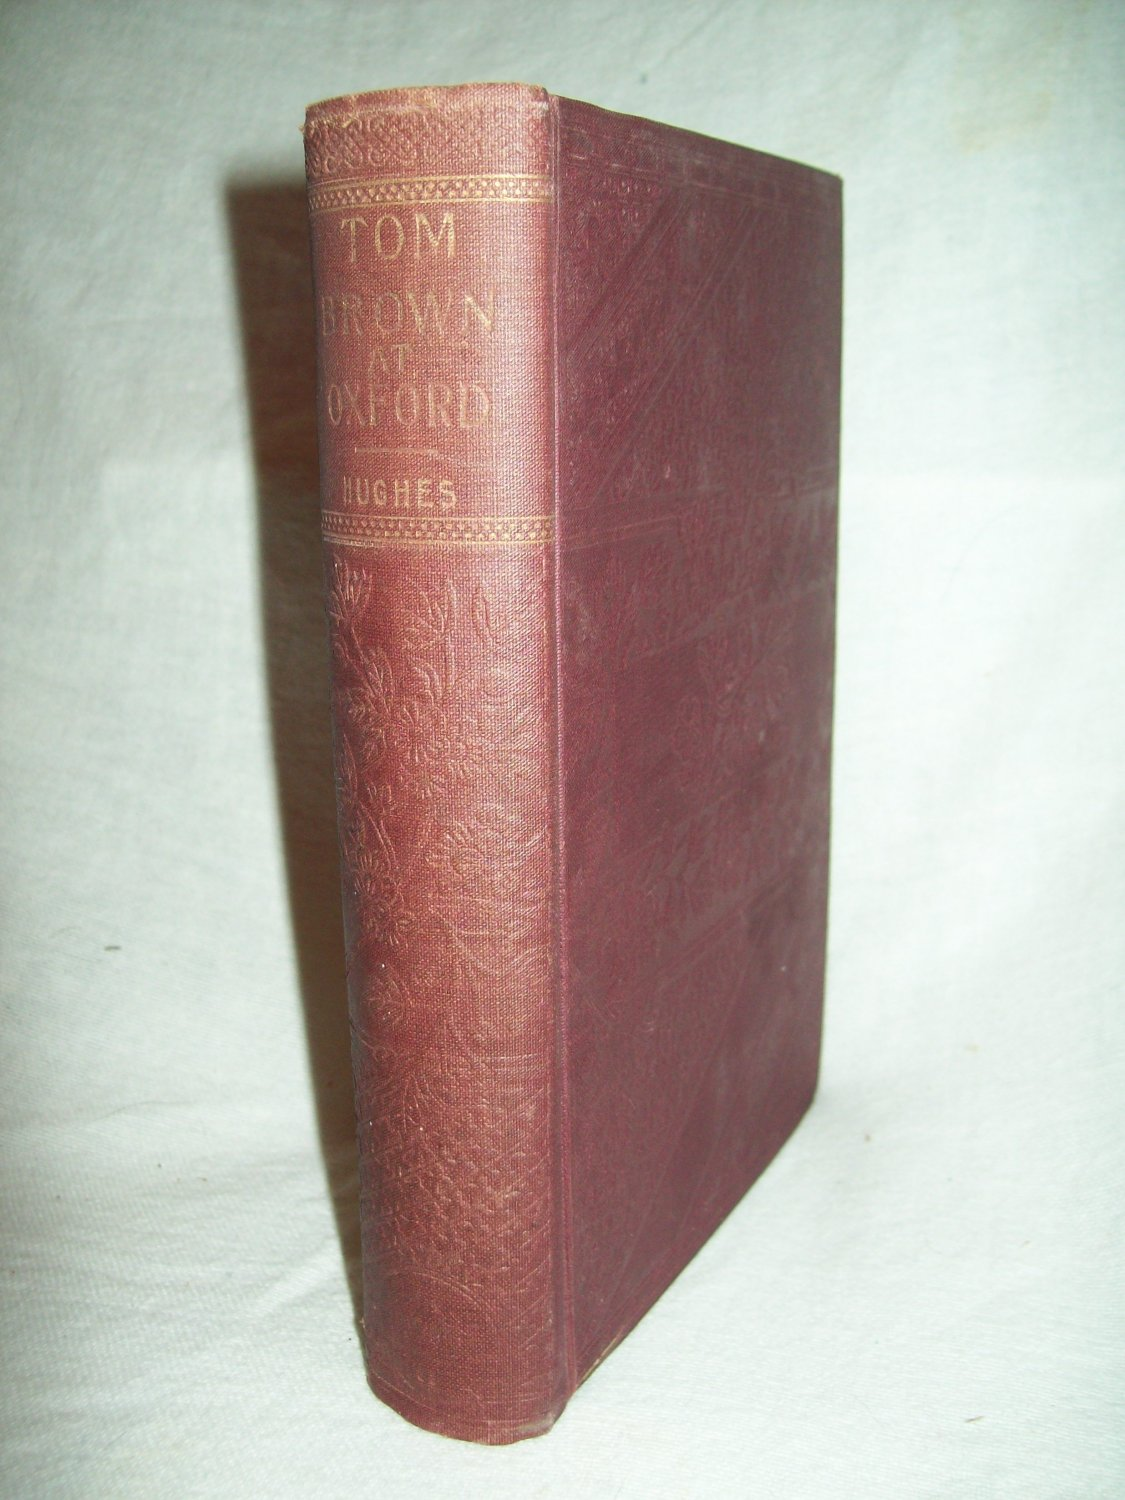 Tom Brown At Oxford. Thomas Hughes, author. Early pirated edition. VG